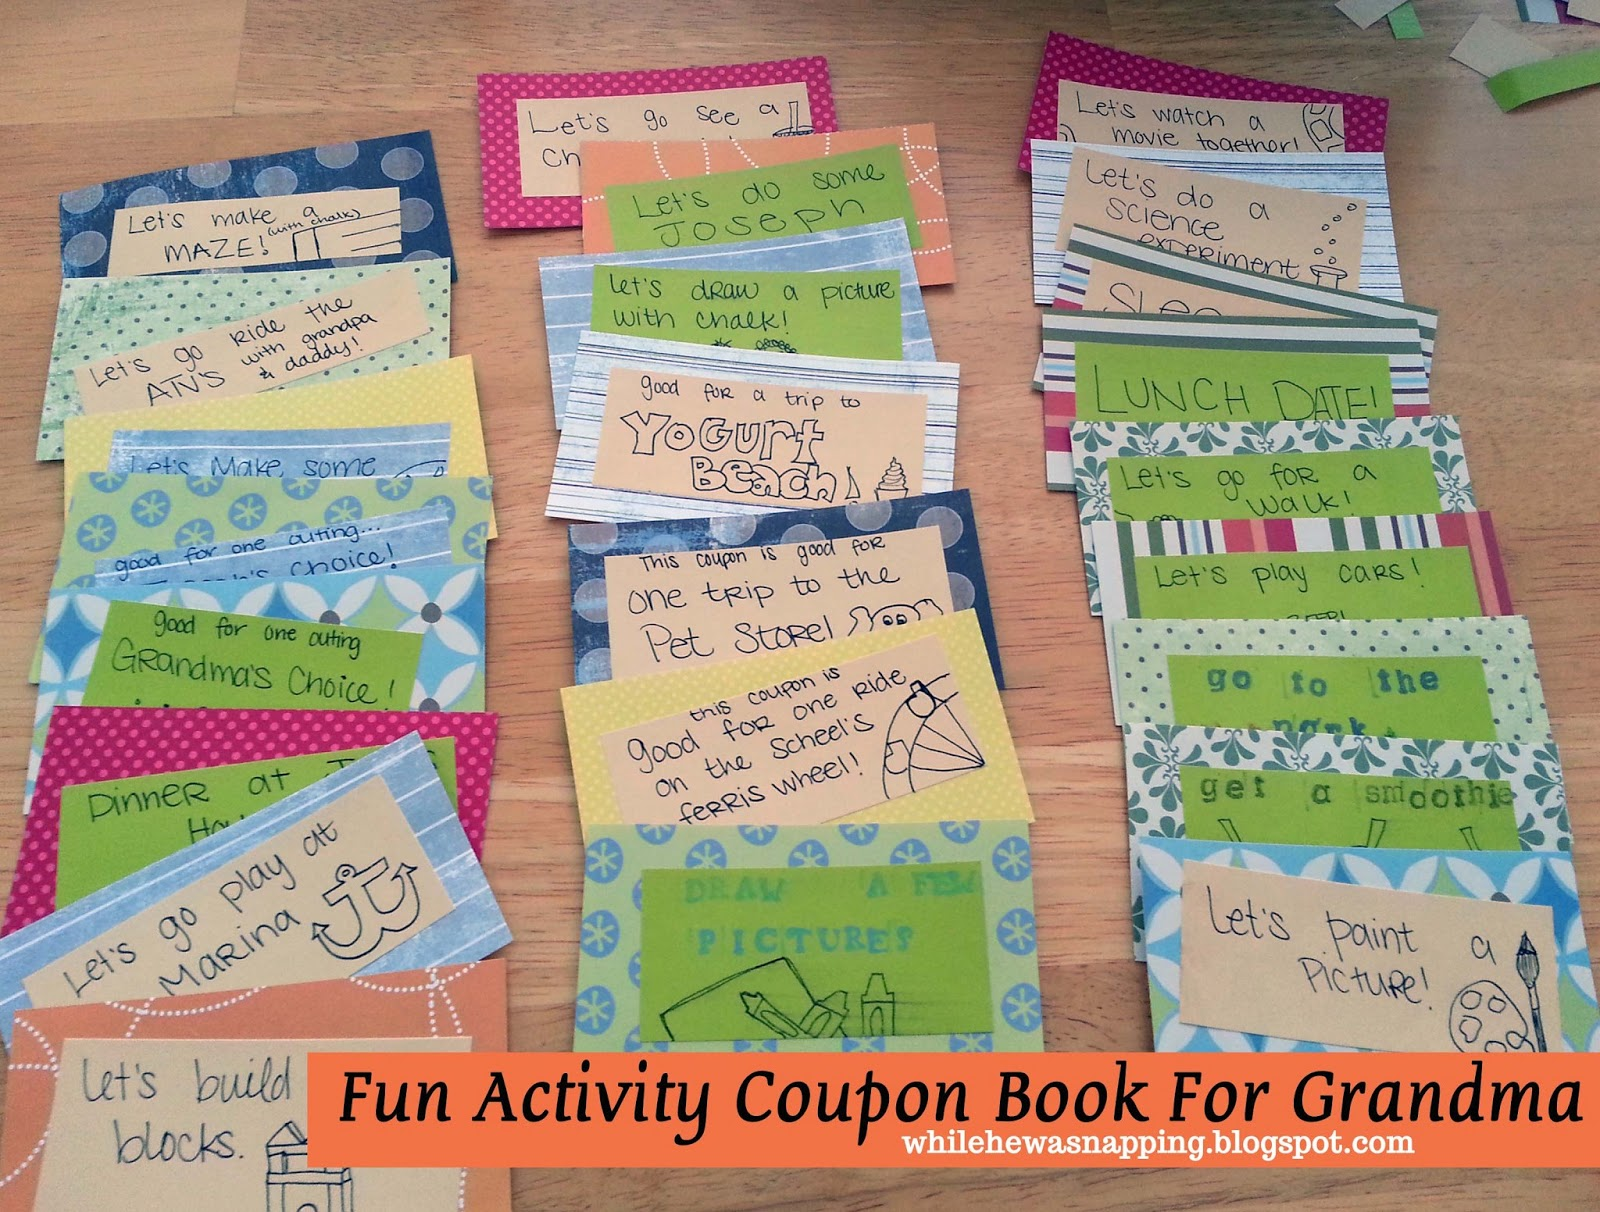 Ideas for coupon book for mom